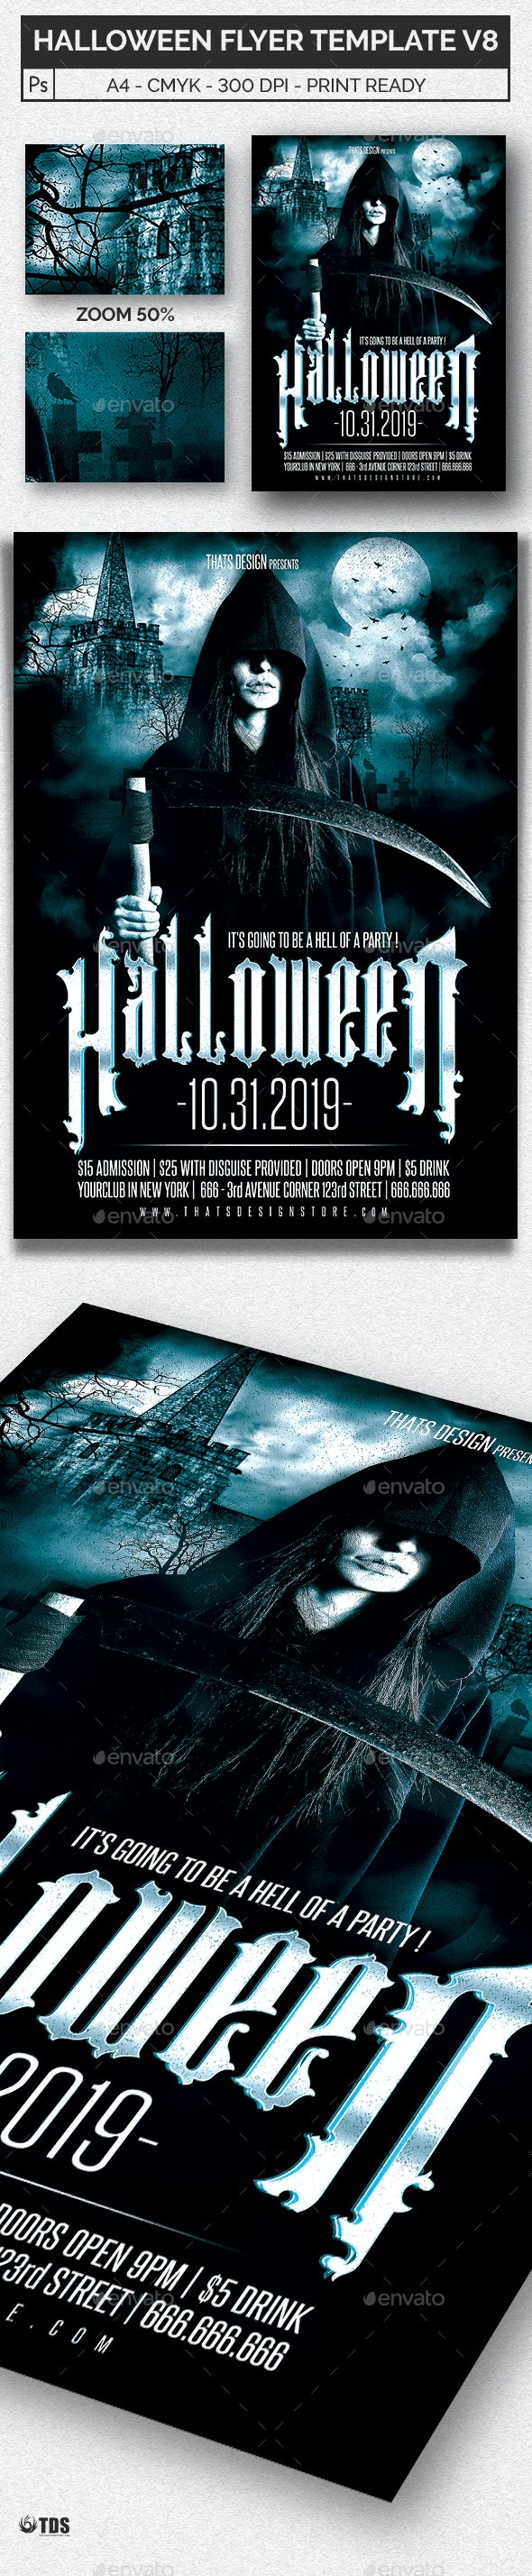 Halloween Flyer Template V8 - Holidays Events